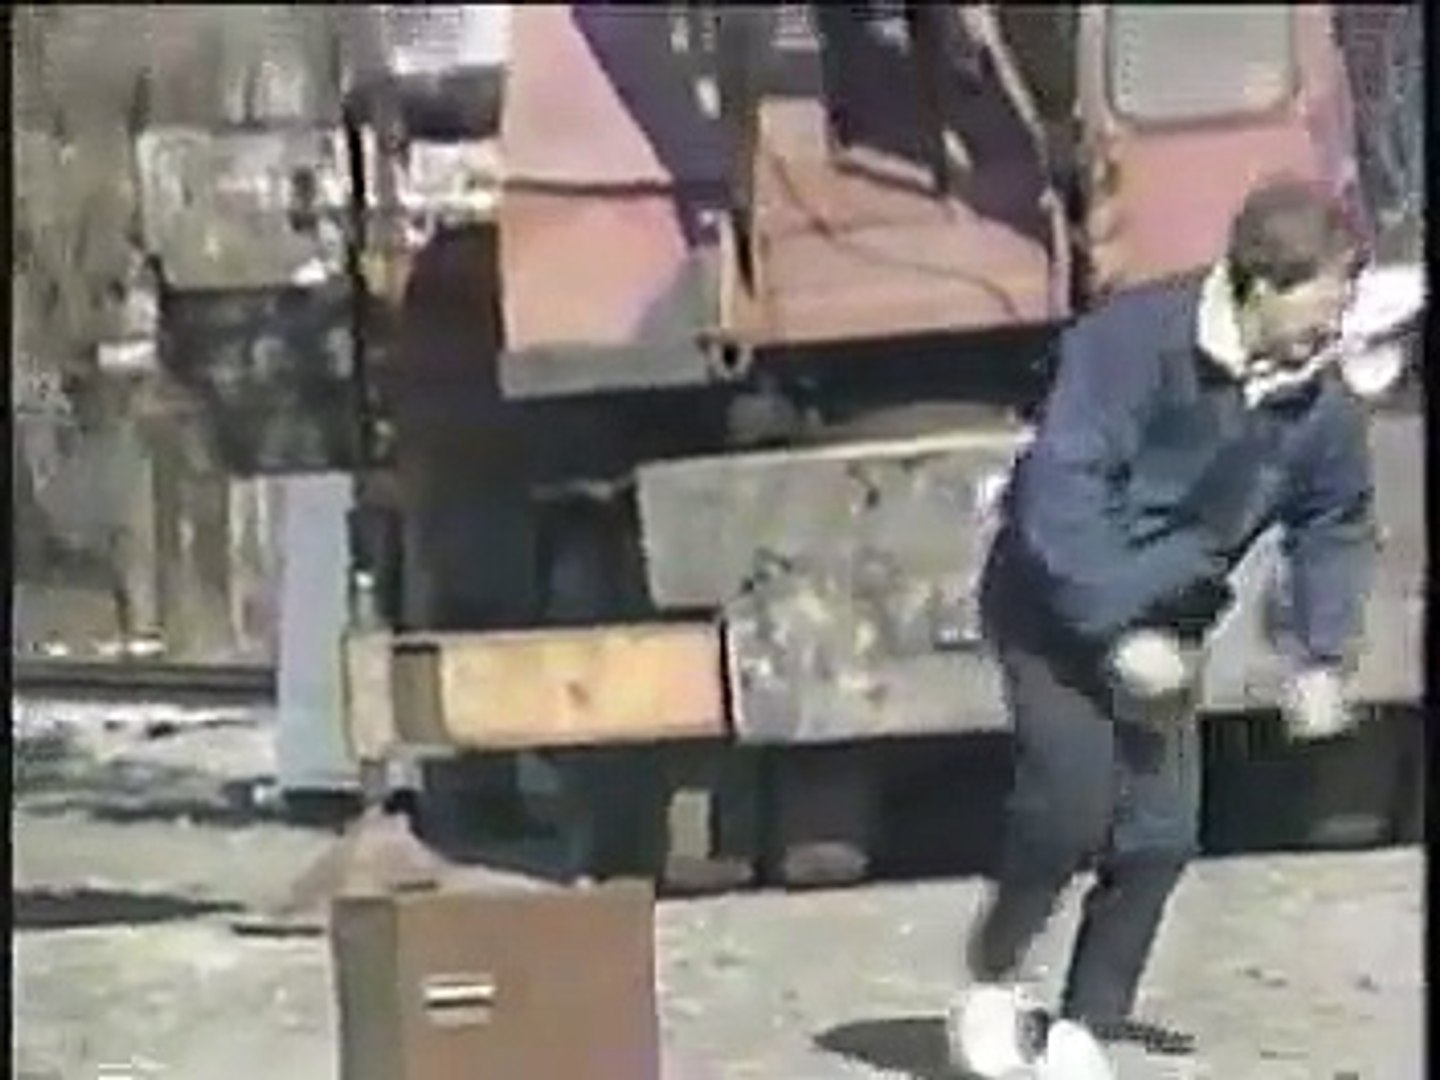 Classic Dave - crushing stuff with a 3000 pound block, 11/17/89